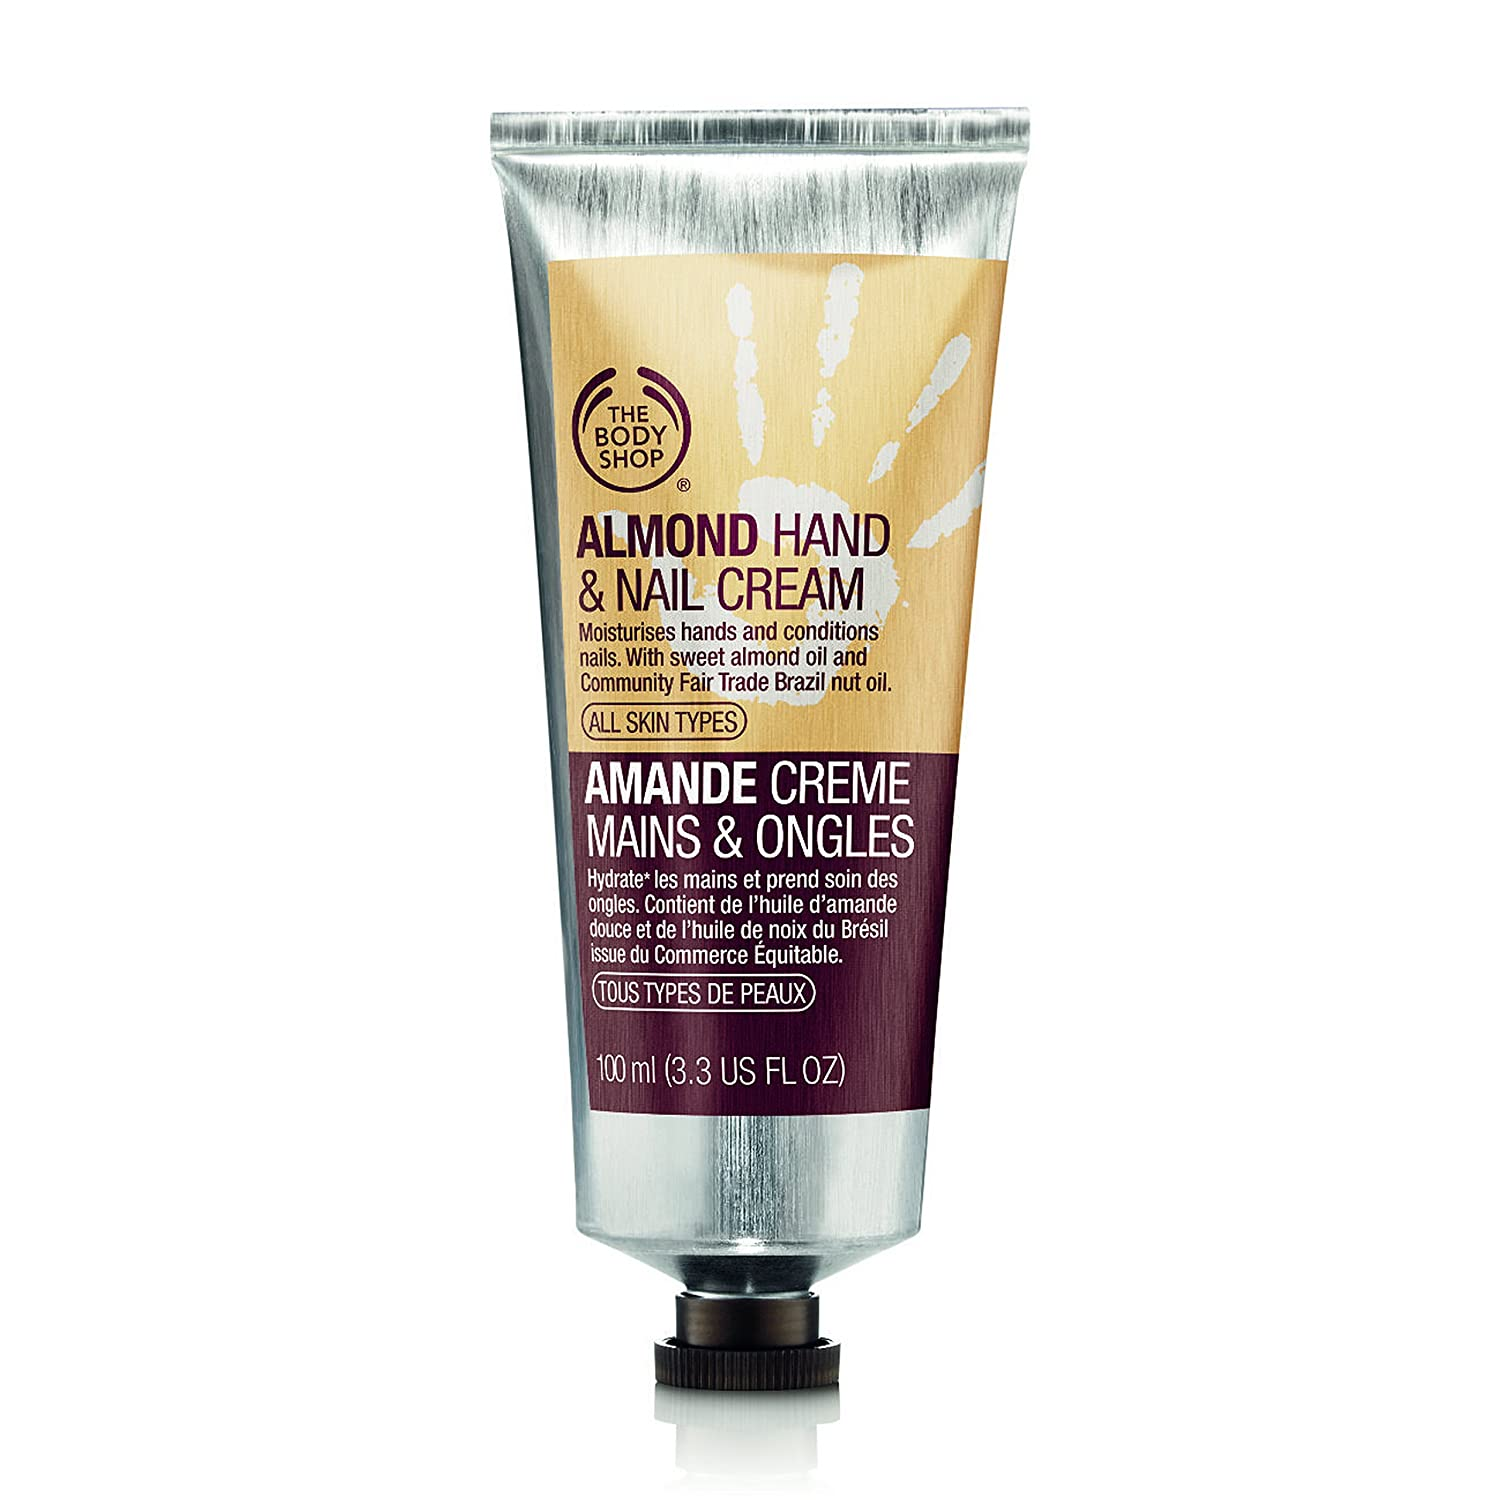 The Body Shop Almond Hand and Nail Cram 30 ml L' Oreal KBH3104